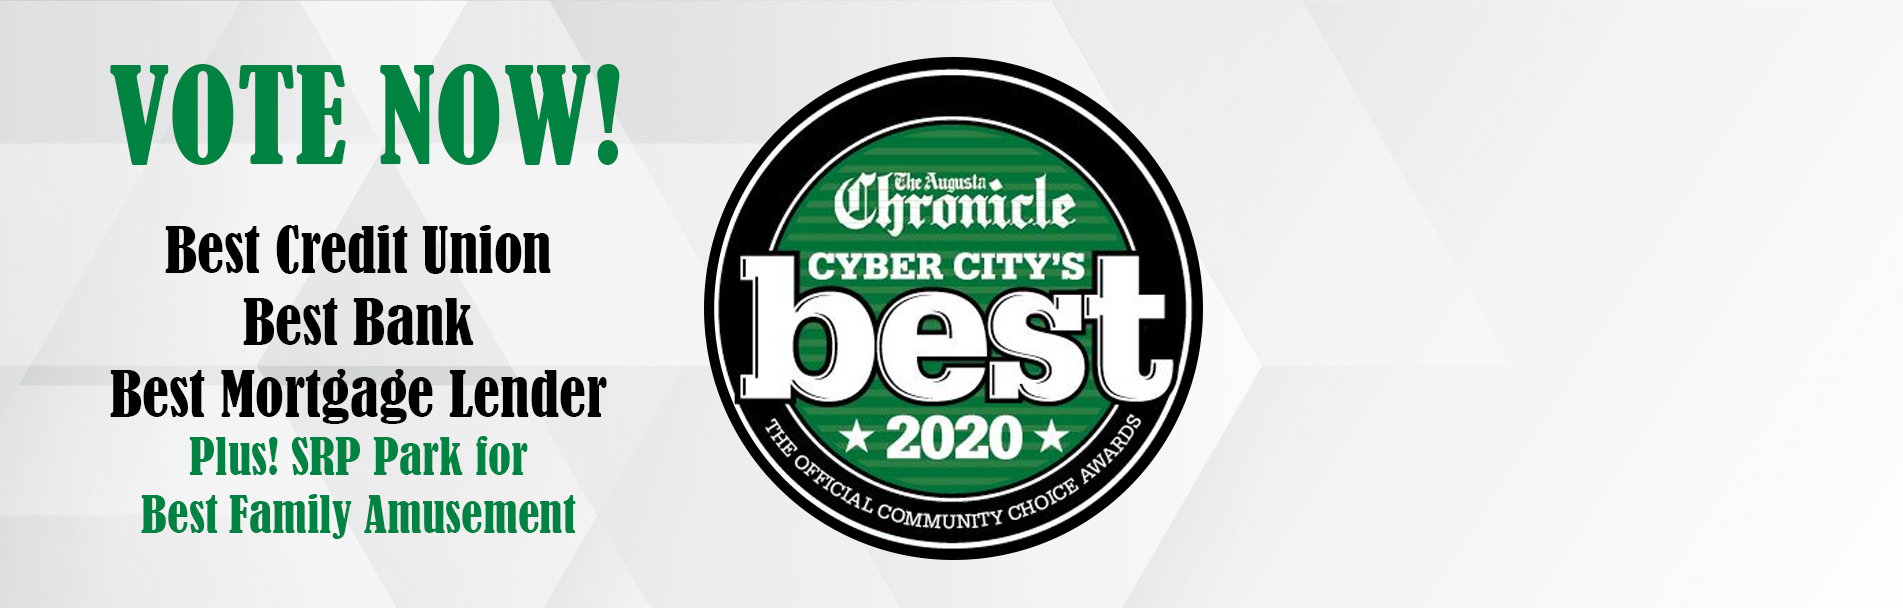 Banner - Vote Now! Cyber City's Best   Home